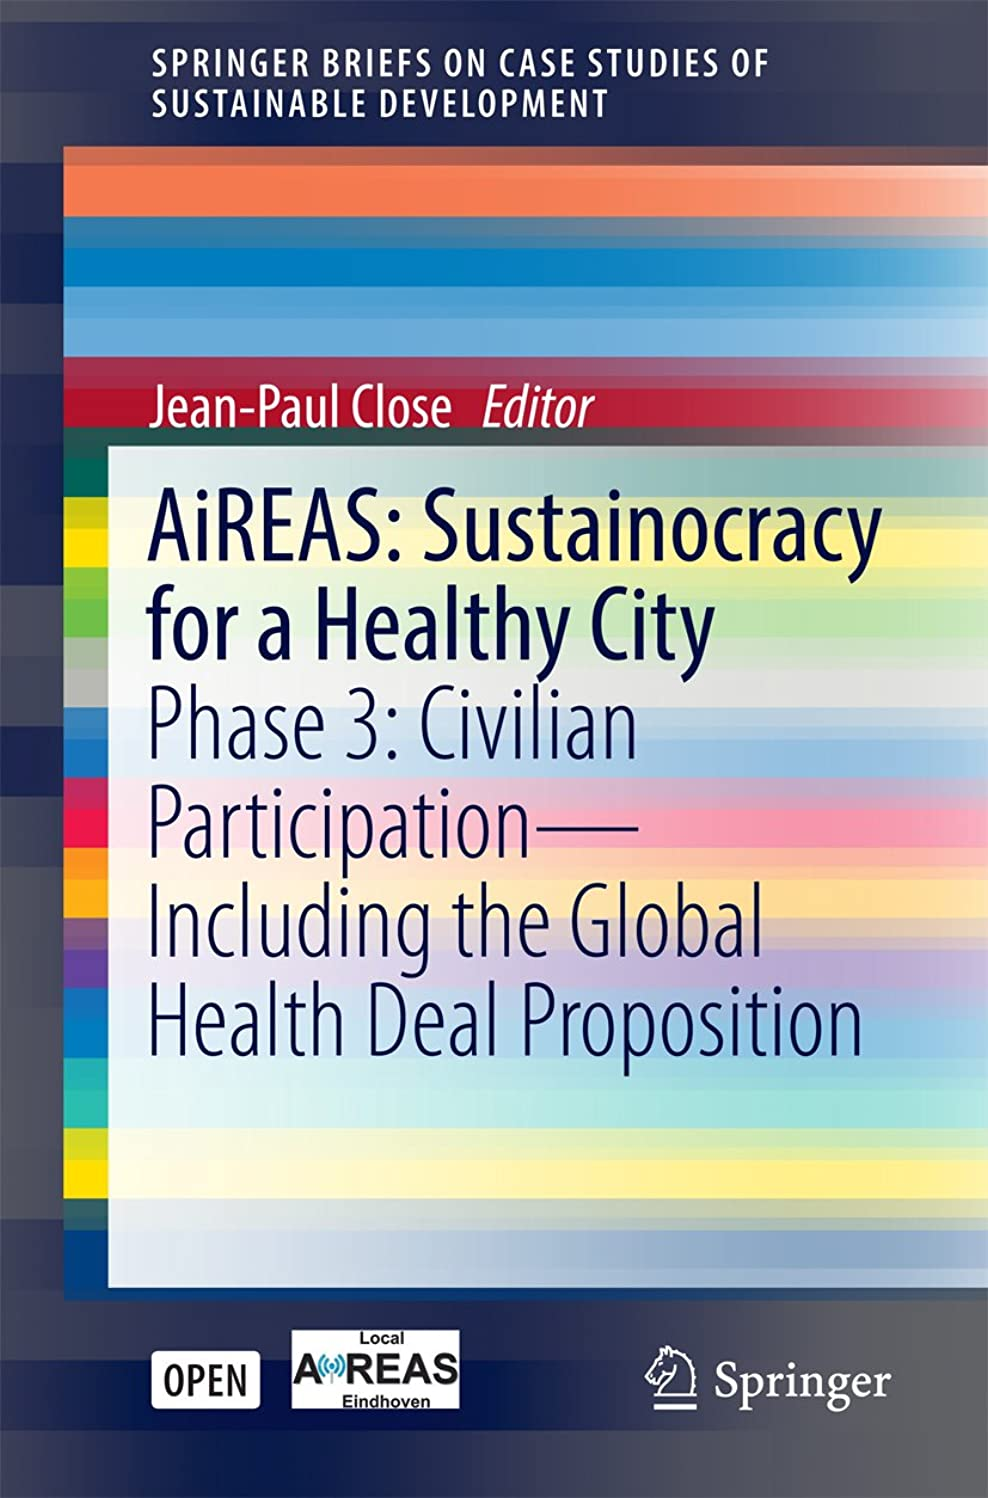 真面目なつぶすゴミAiREAS: Sustainocracy for a Healthy City: Phase 3: Civilian Participation – Including the Global Health Deal Proposition (SpringerBriefs on Case Studies of Sustainable Development) (English Edition)